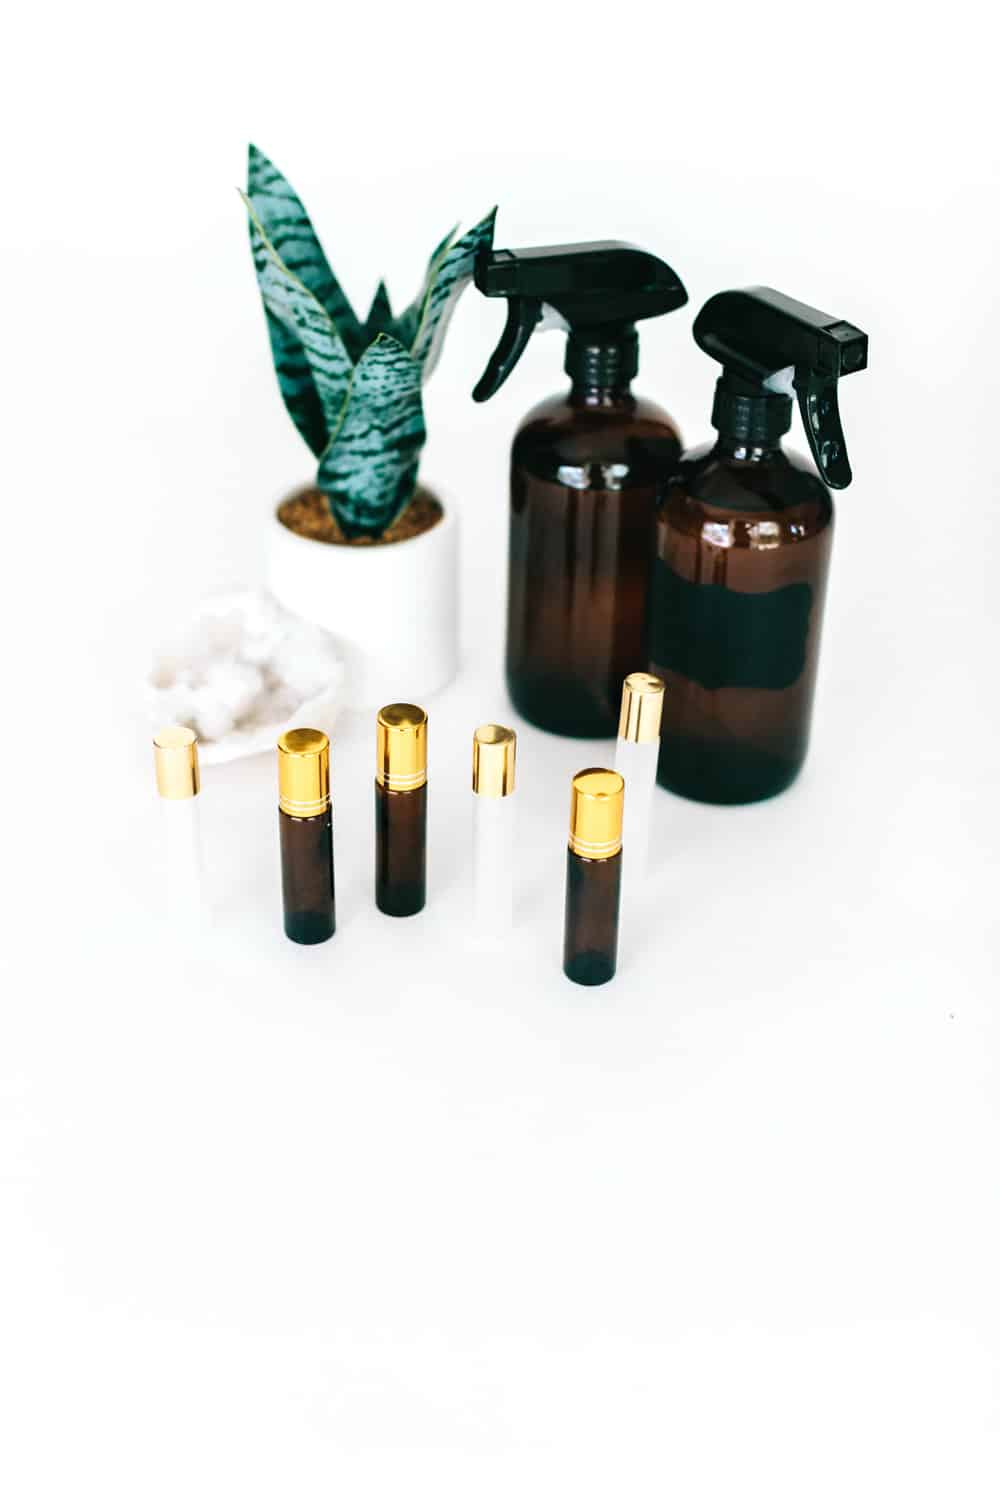 essential oil roller bottles and brown glass spray bottles next to snake plant